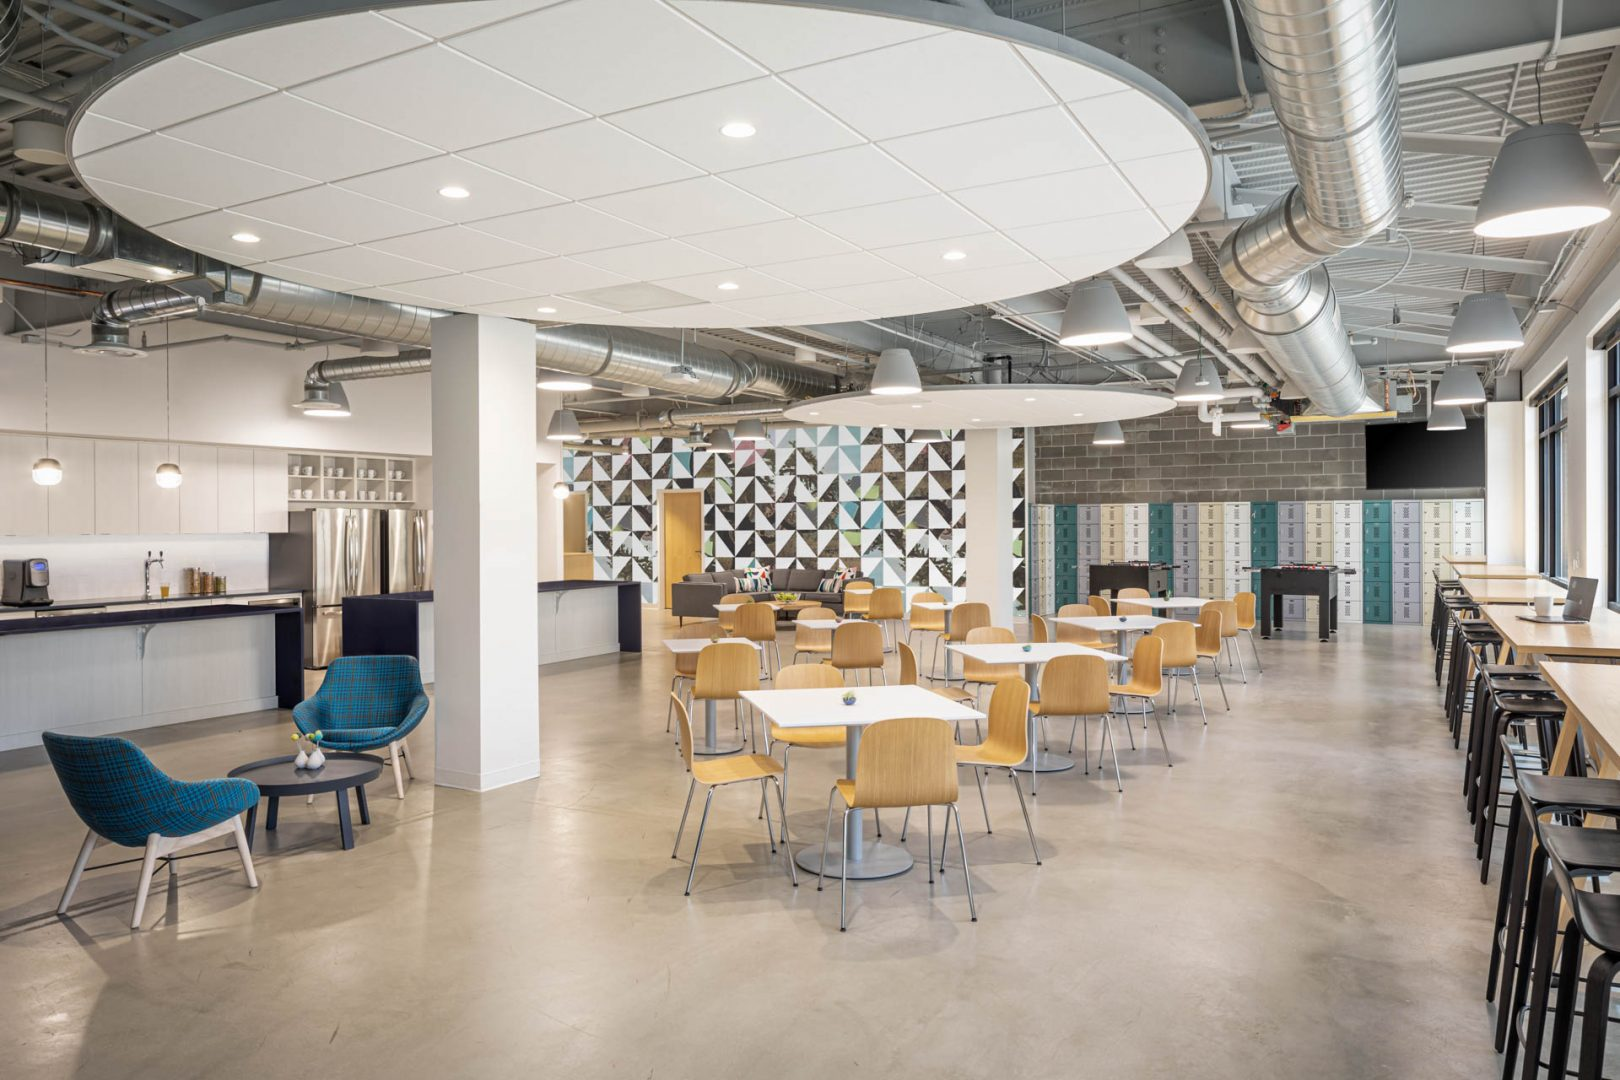 Corporate Interior Design Breakroom Floating Ceiling Circles Open to Structure Cognizant Denver